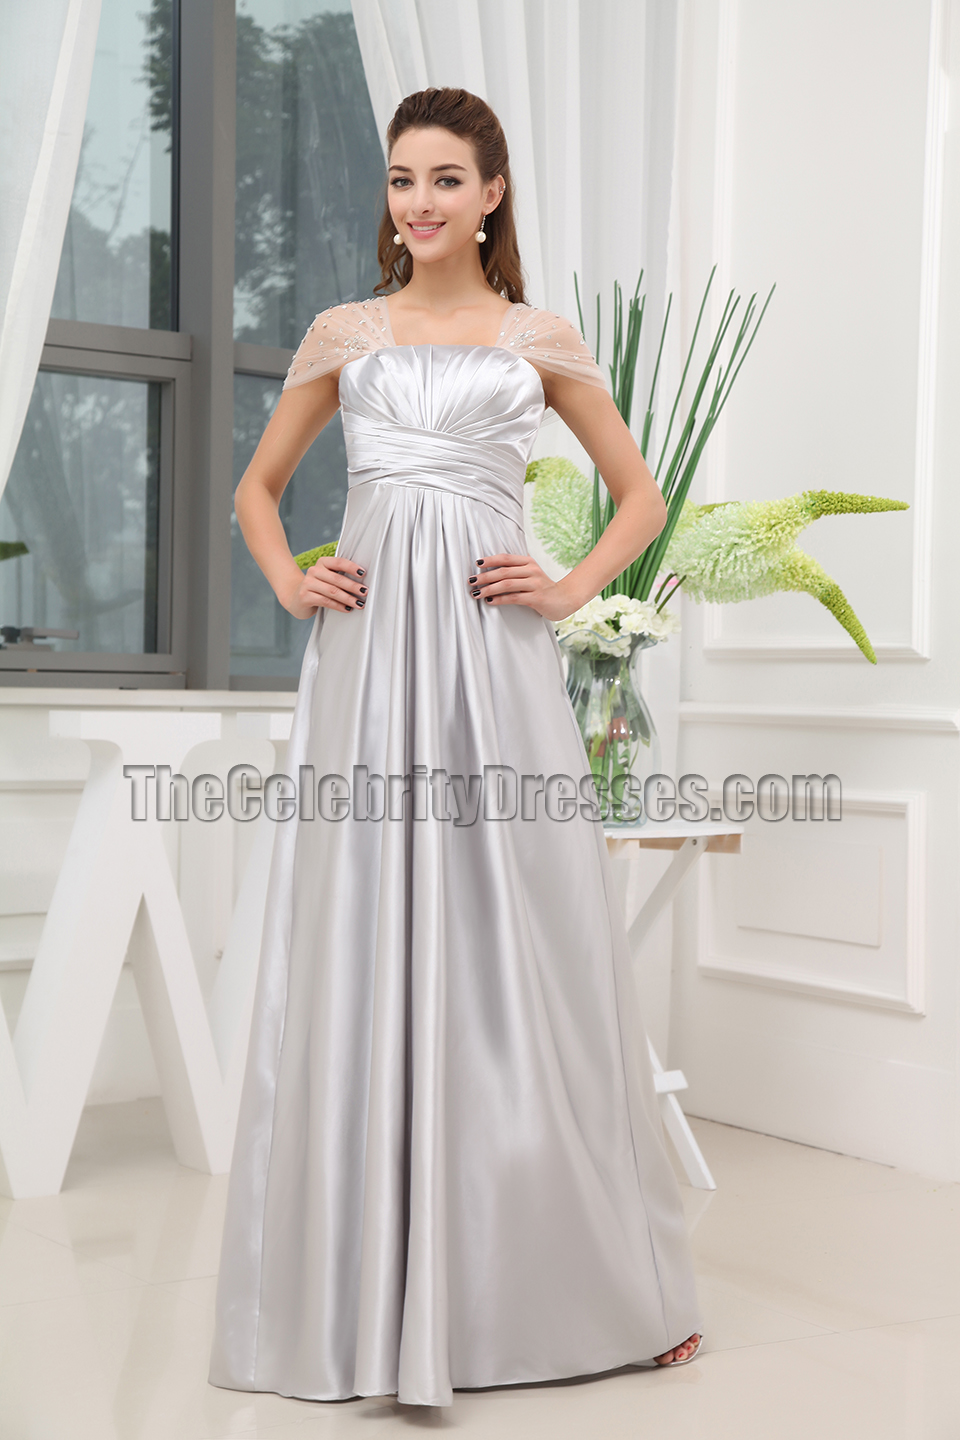 Silver Cap Sleeves Evening Gowns Prom Bridesmaid Dresses Thecelebritydresses